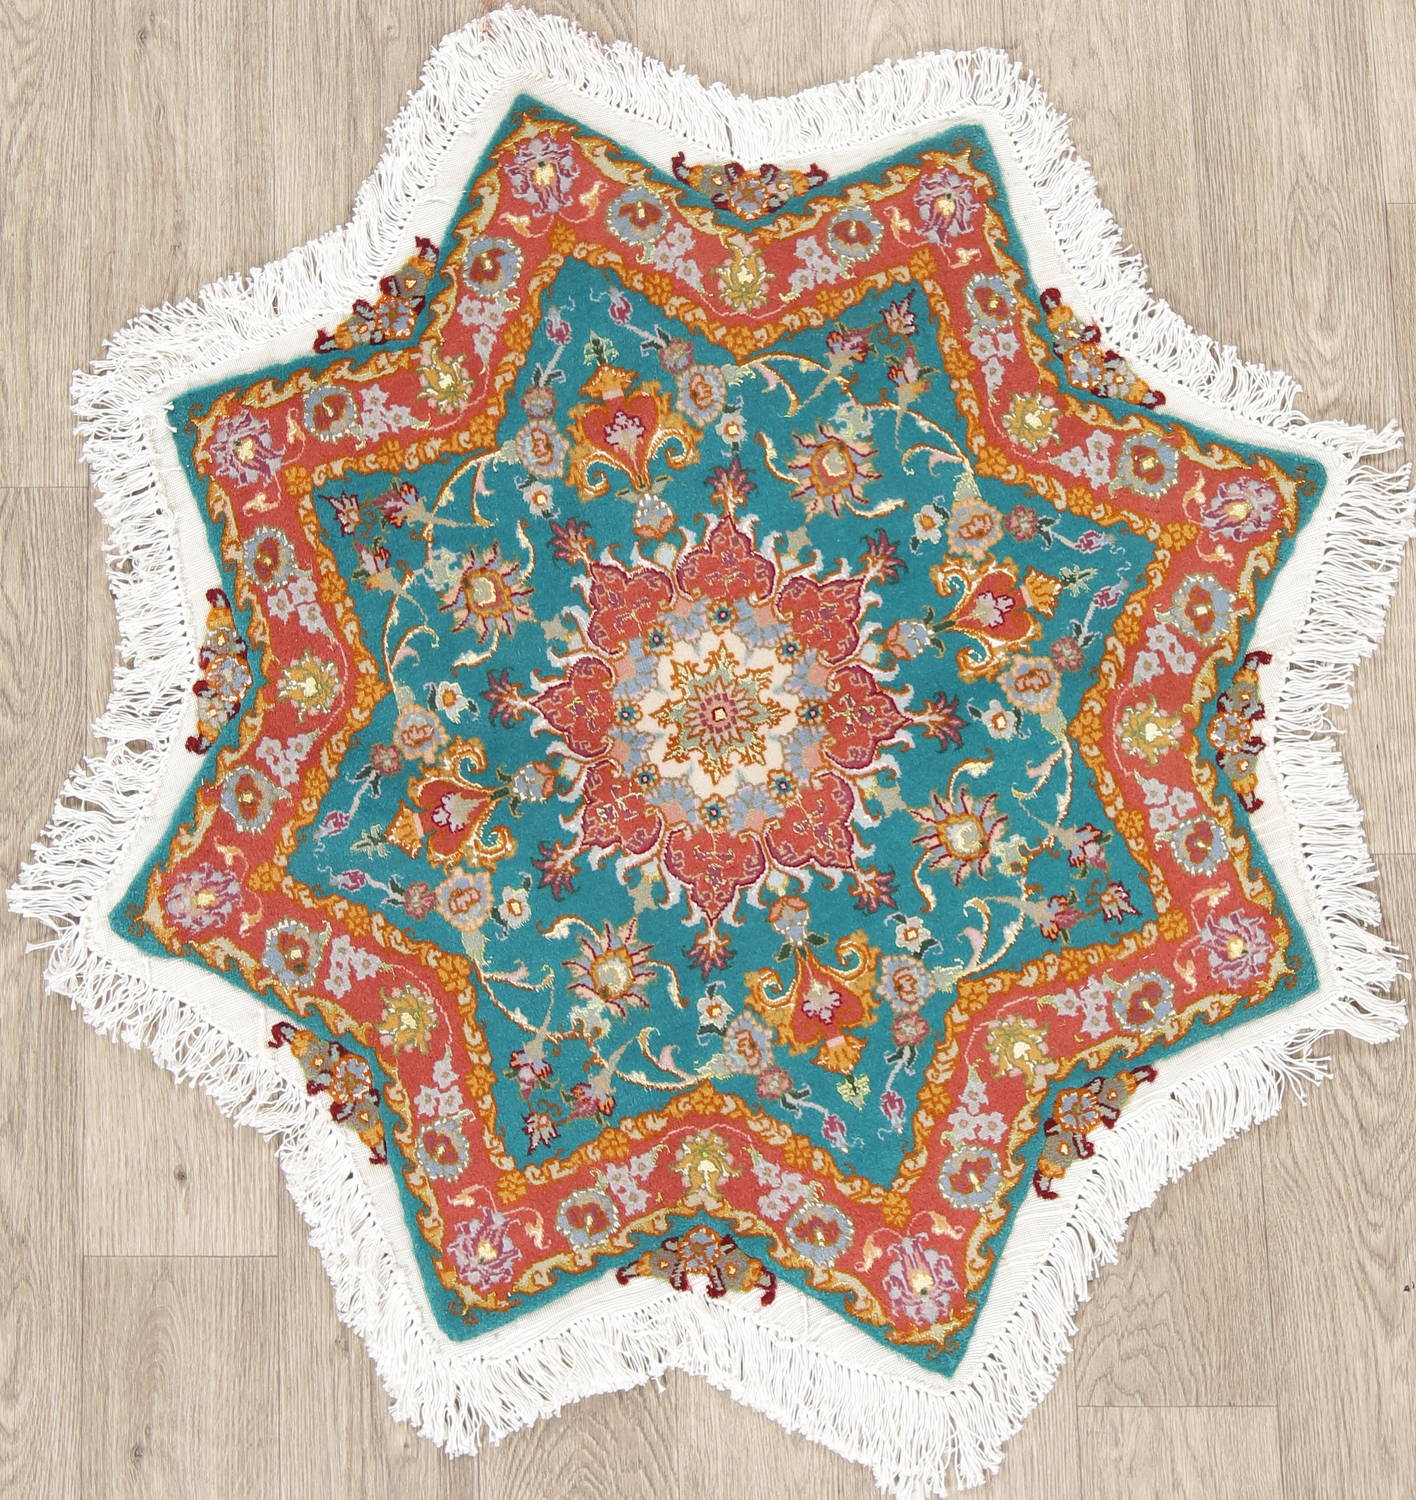 Floral Teal Tabriz Persian Hand-Knotted 3x3 Wool Silk Star Rug image 1